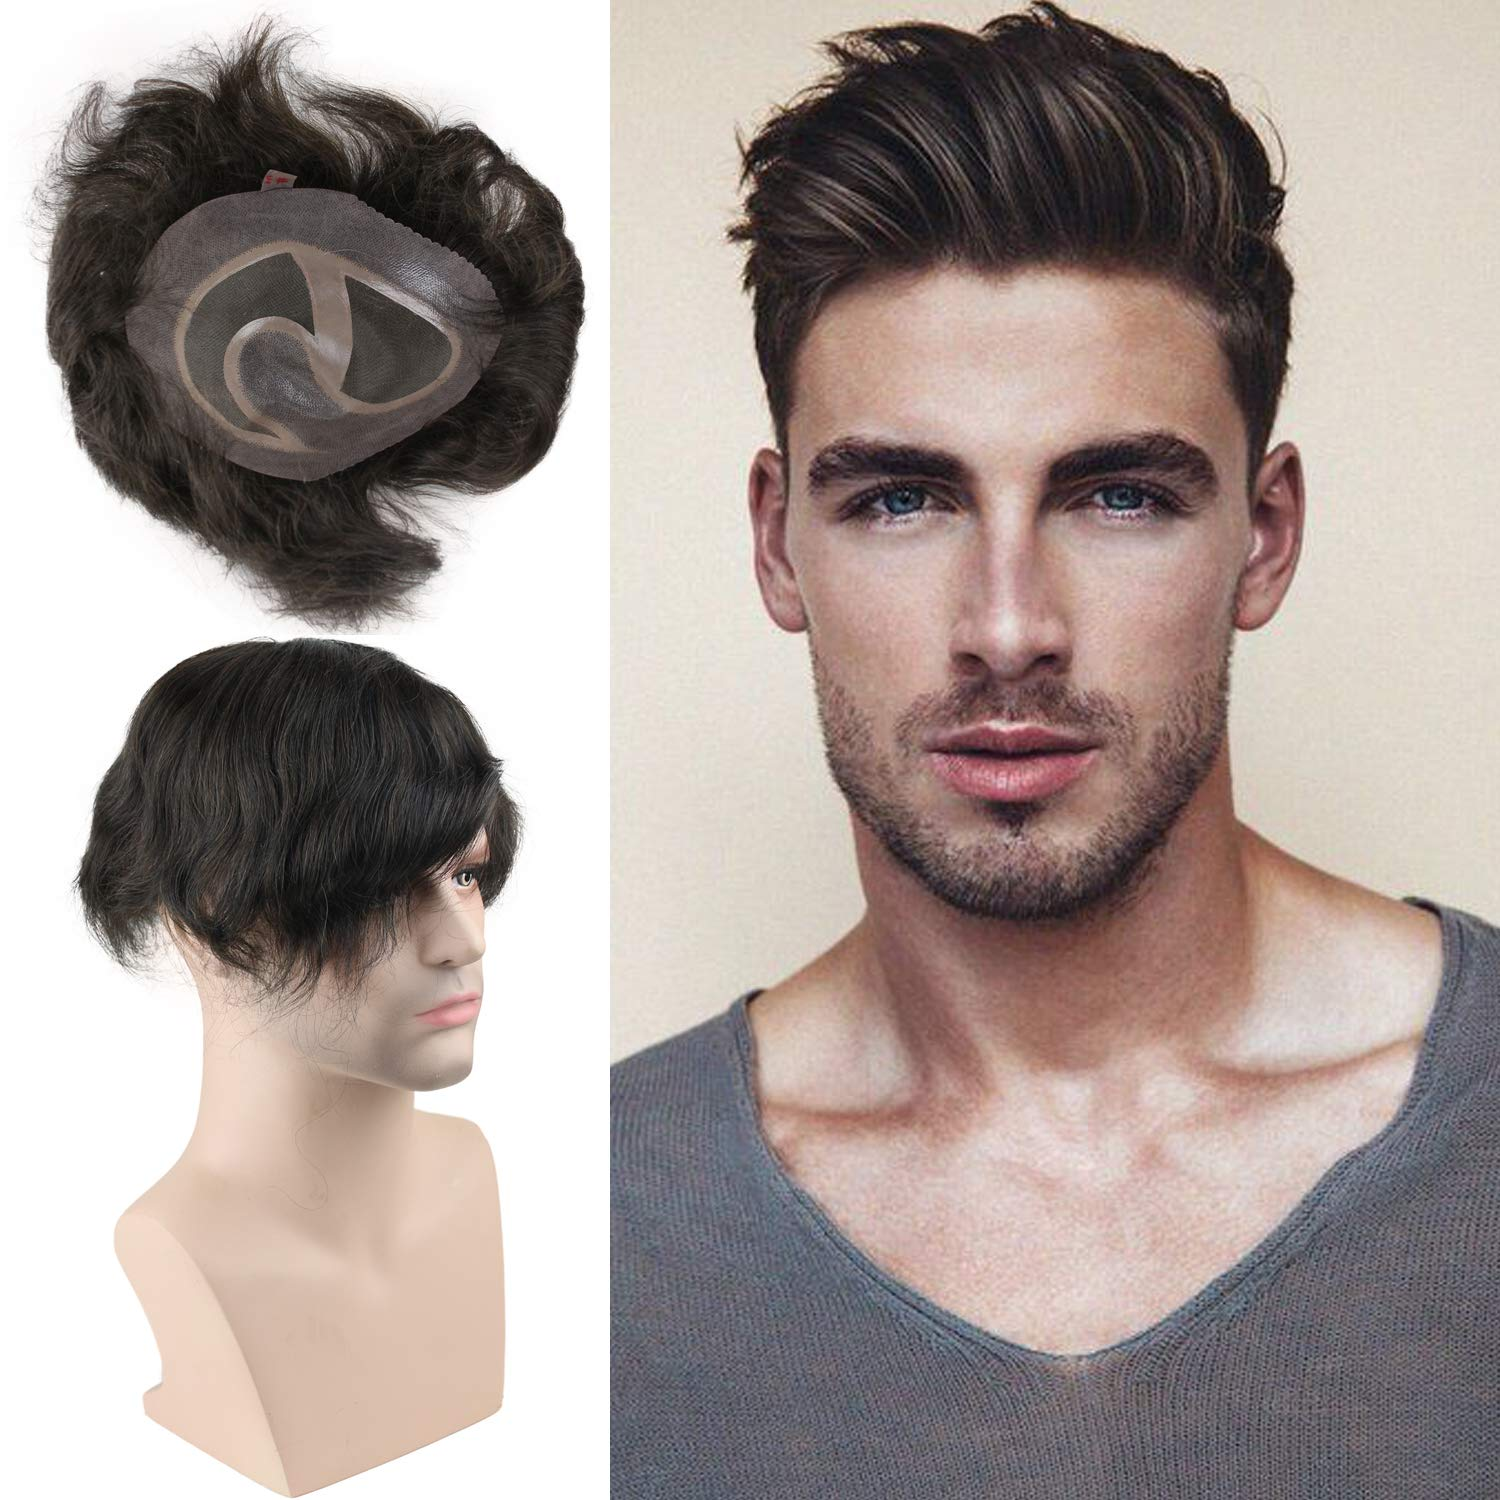 Replacement For Men Thin Skin Toupee Mono Lace Top Men's Hair Pieces Replacement System #3 Dark Brown Color Human Hair Toupee